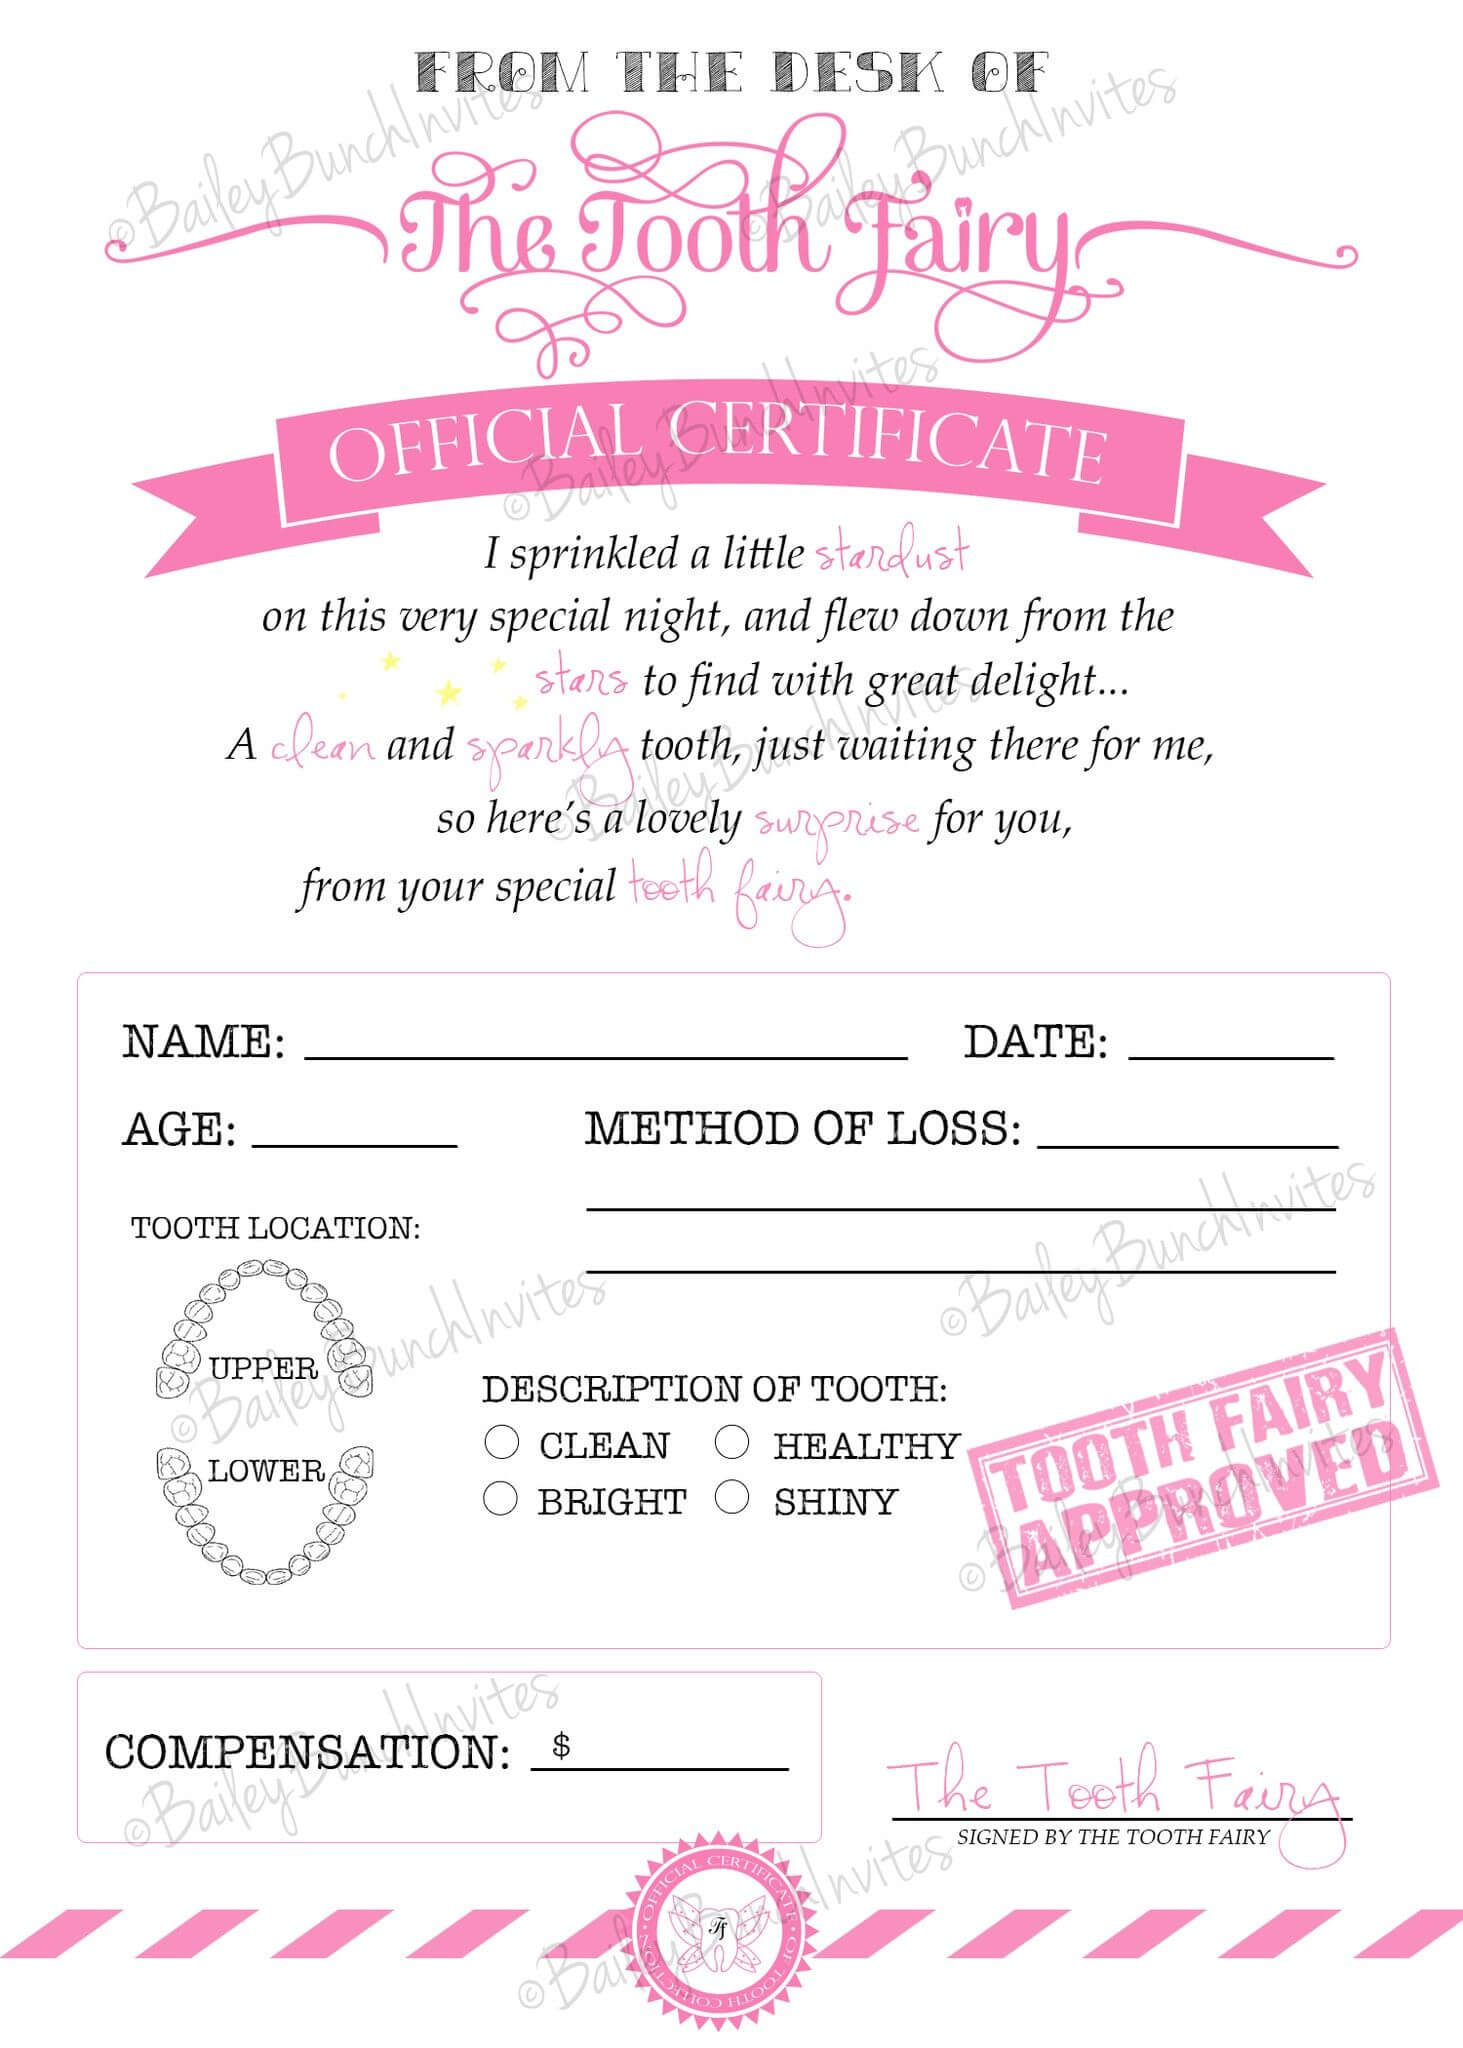 Tooth Fairy Certificate - Pink - Instant Download Inside Tooth Fairy Certificate Template Free